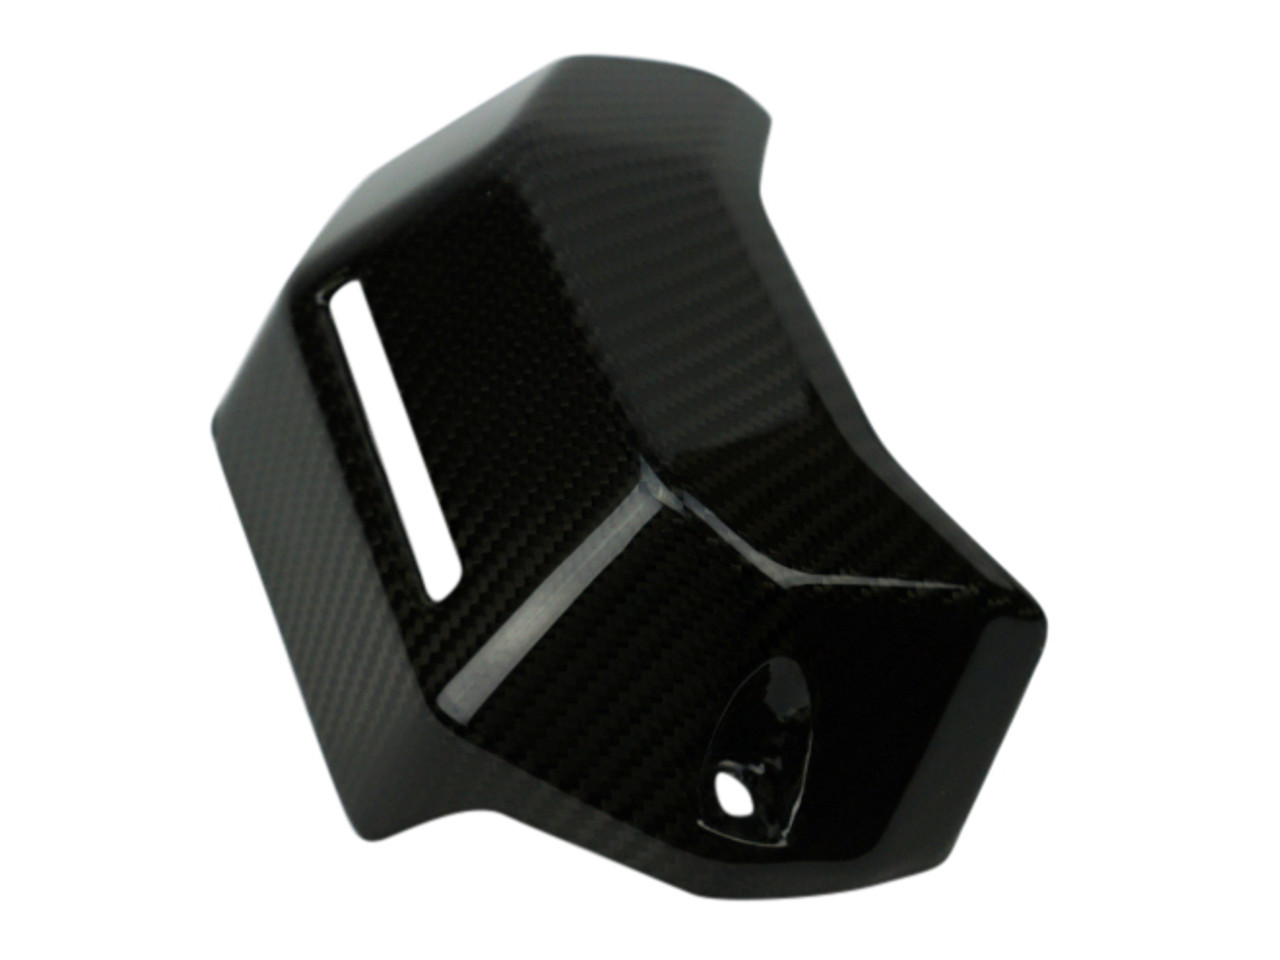 Coolant Reservoir Cover in Glossy Twill Weave Carbon Fiber for Yamaha FZ-07/ MT-07 2015+